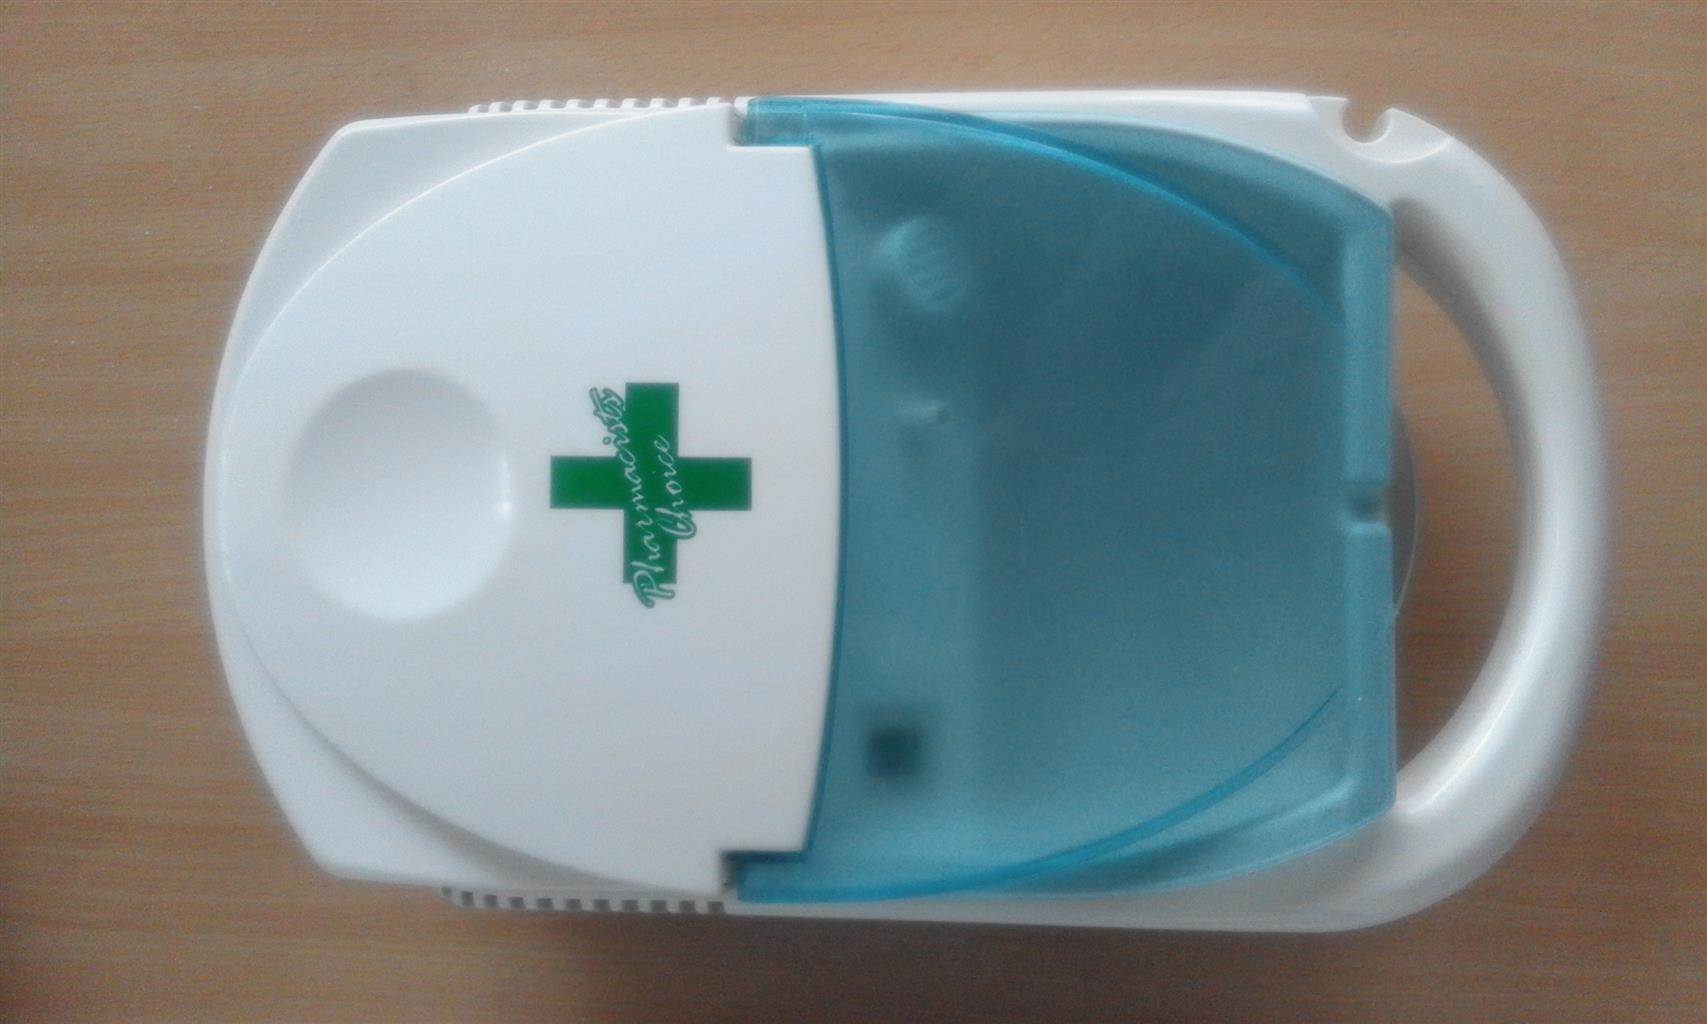 Nebulizer Pharmasist Choice As good as new.